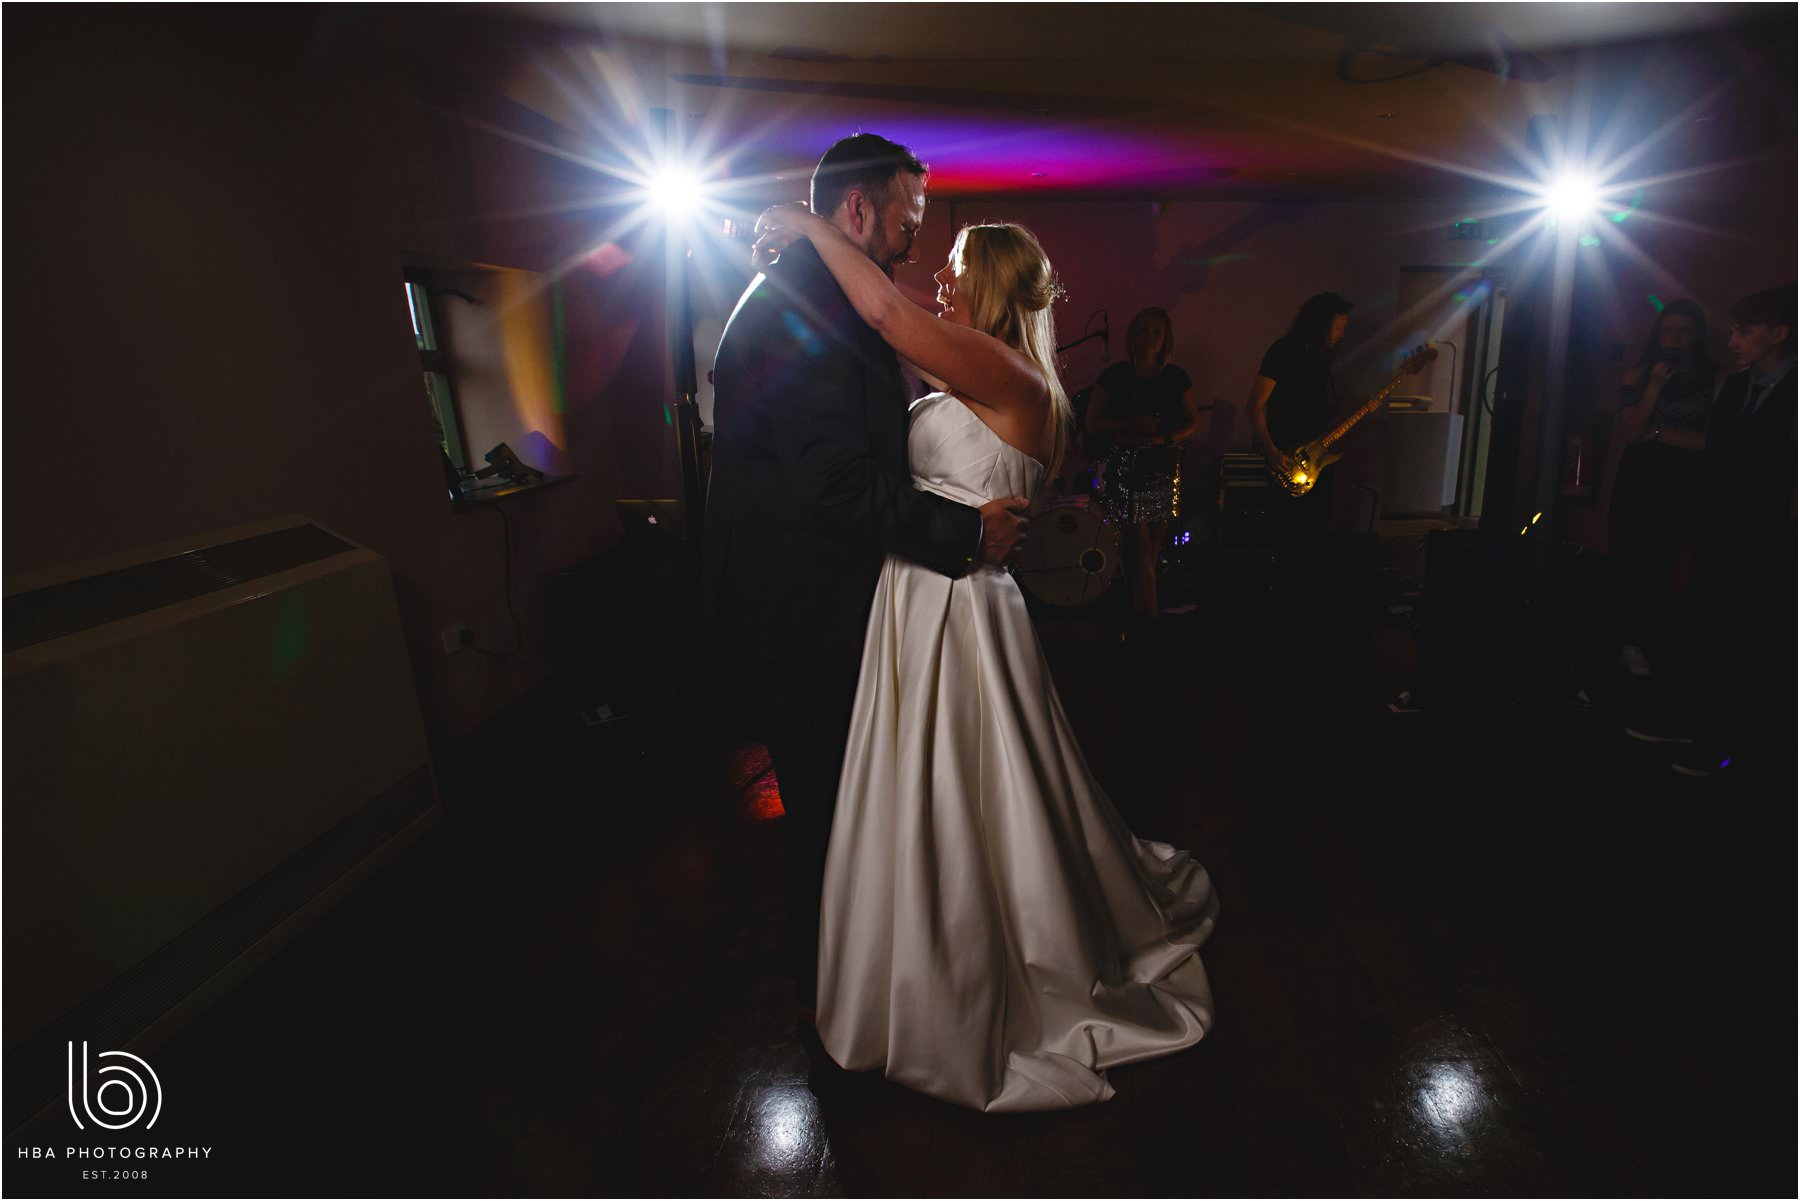 the bride & groom's first dance!!